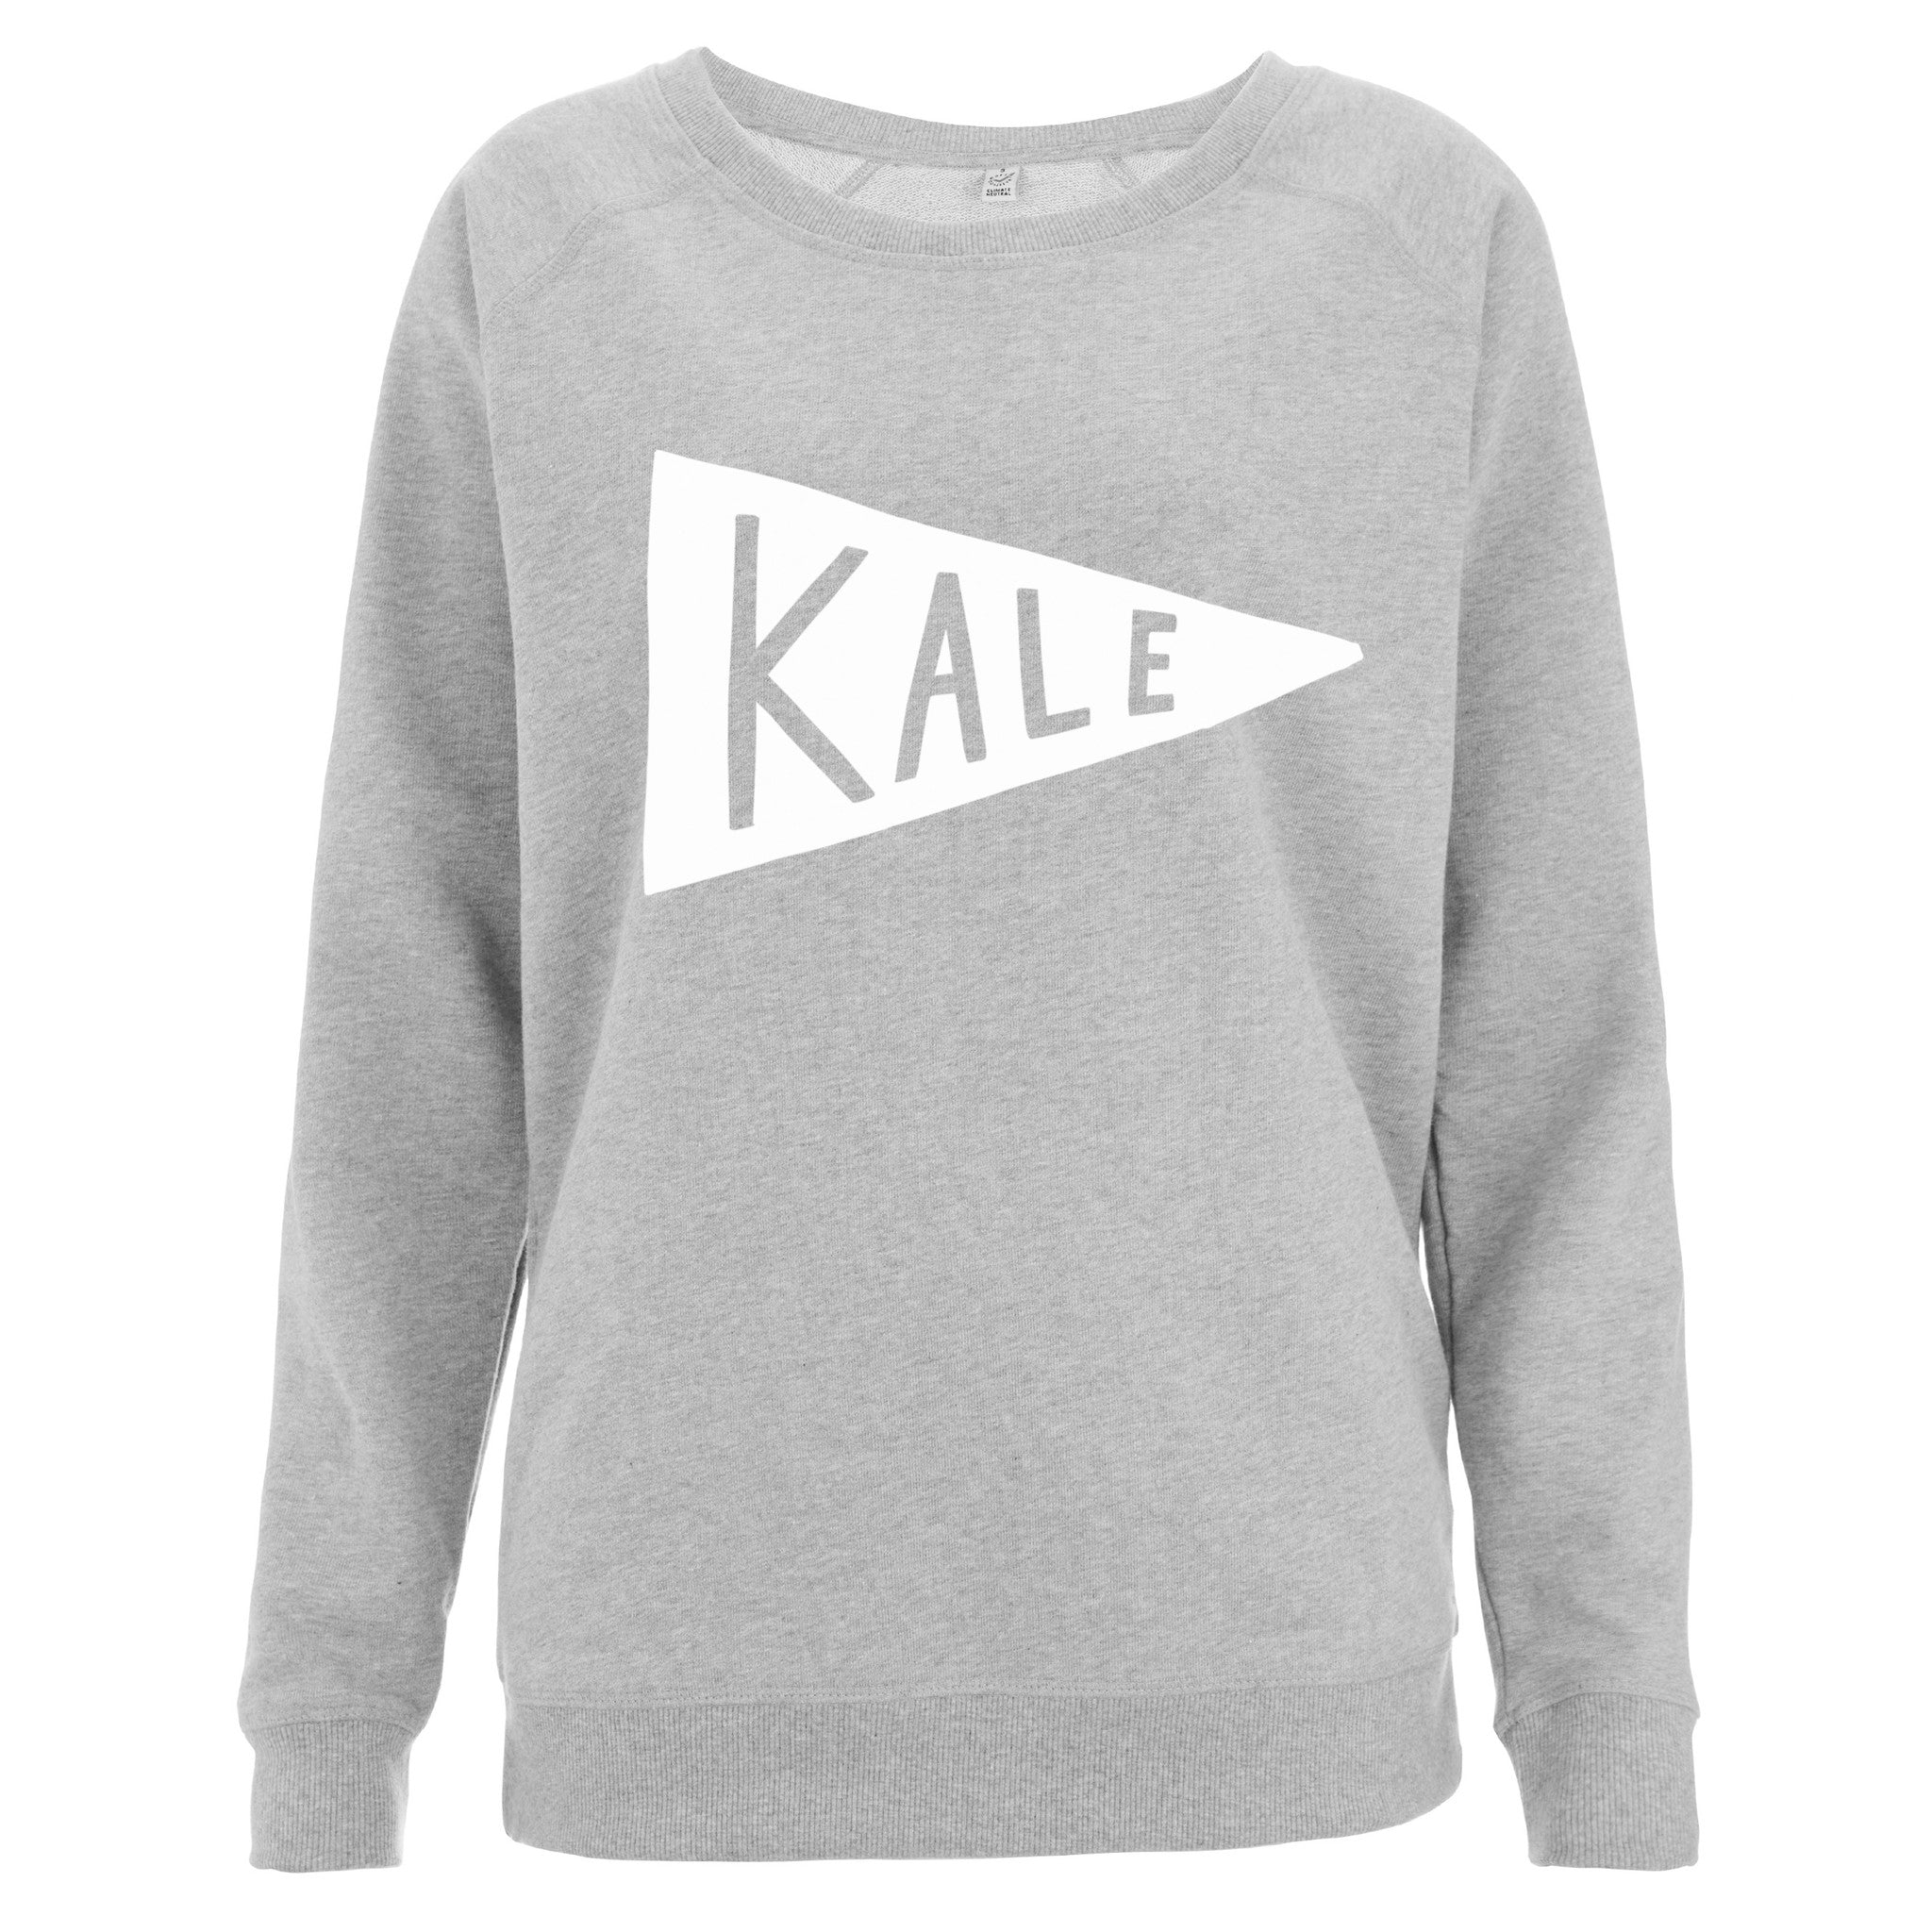 Kale Women's Scoop Neck Sweatshirt